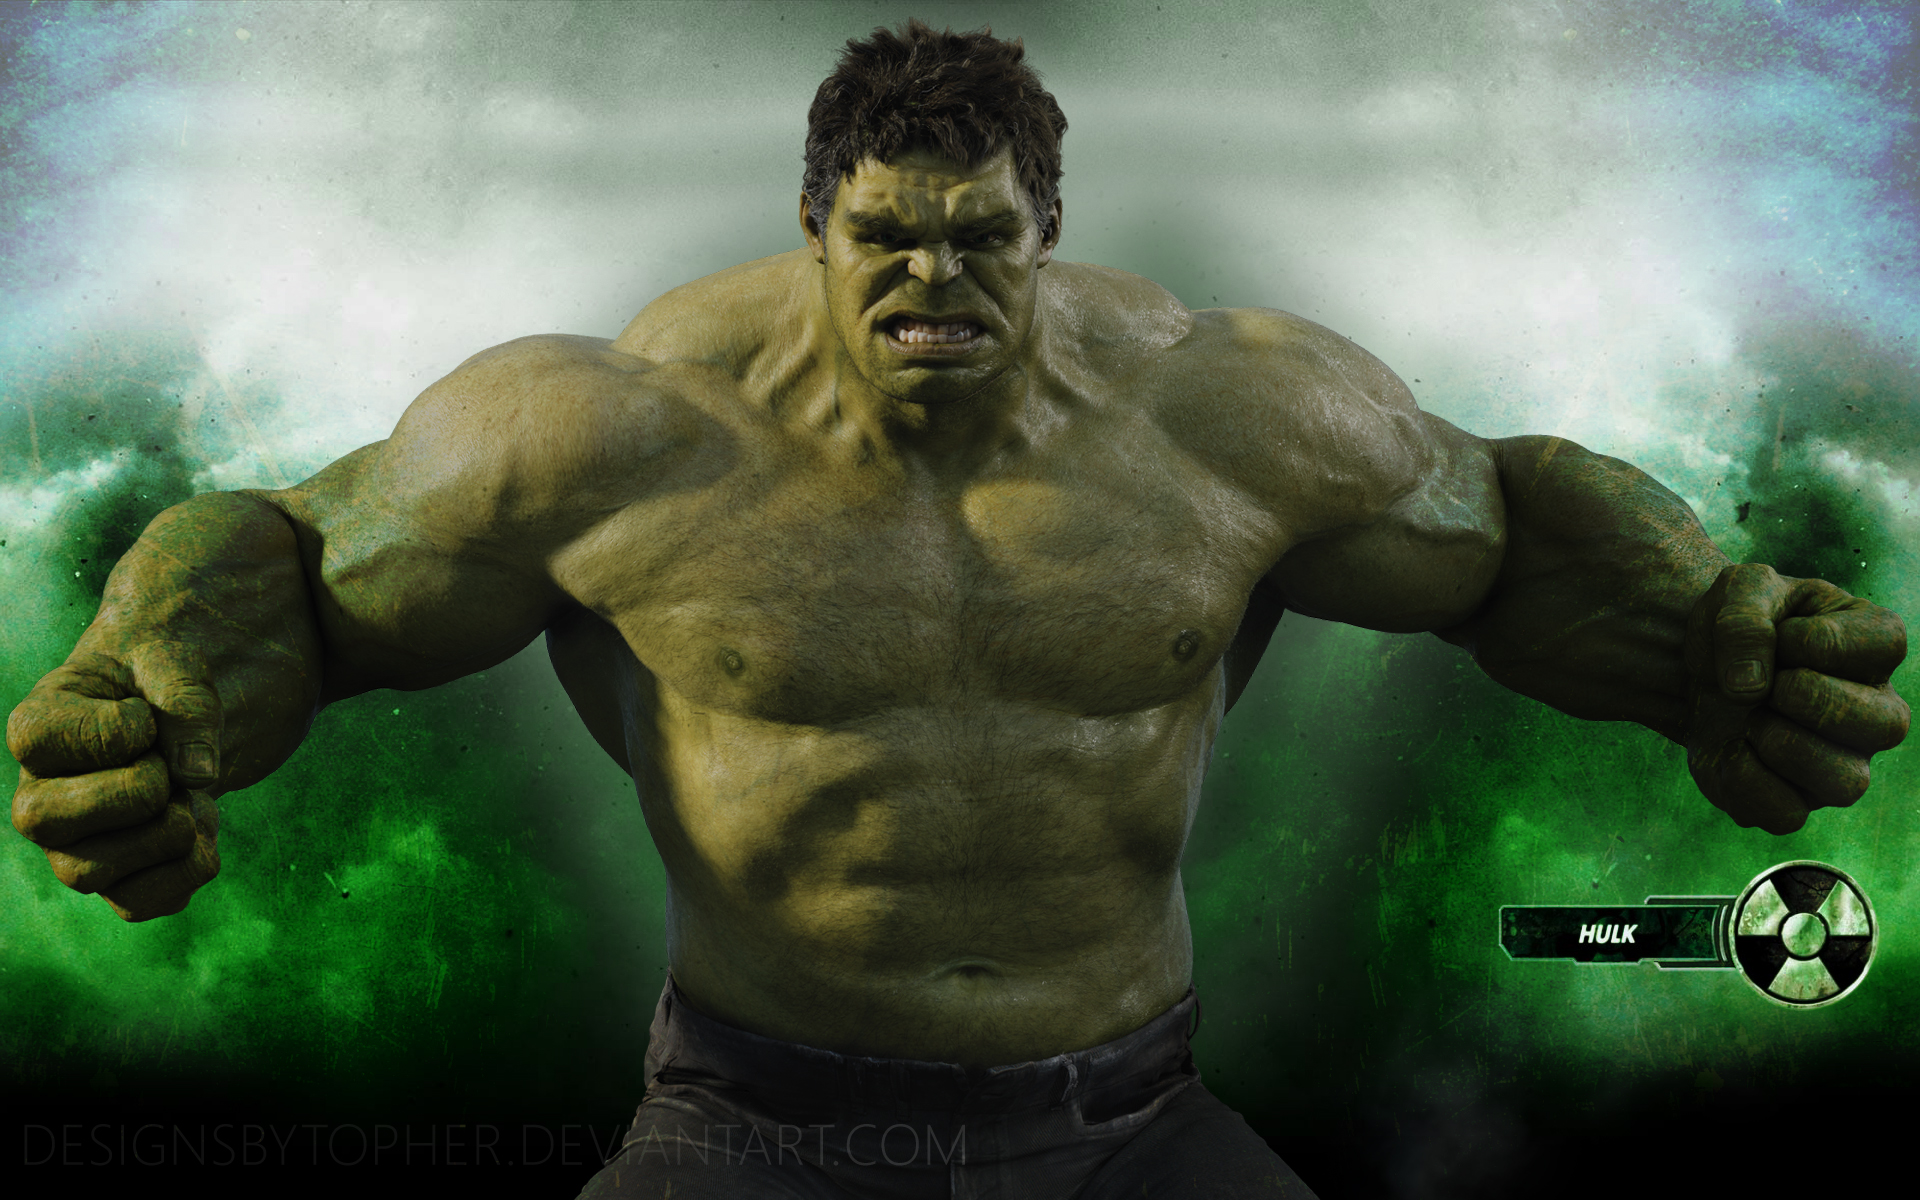 Hulk Wallpaper - WallpaperSafari